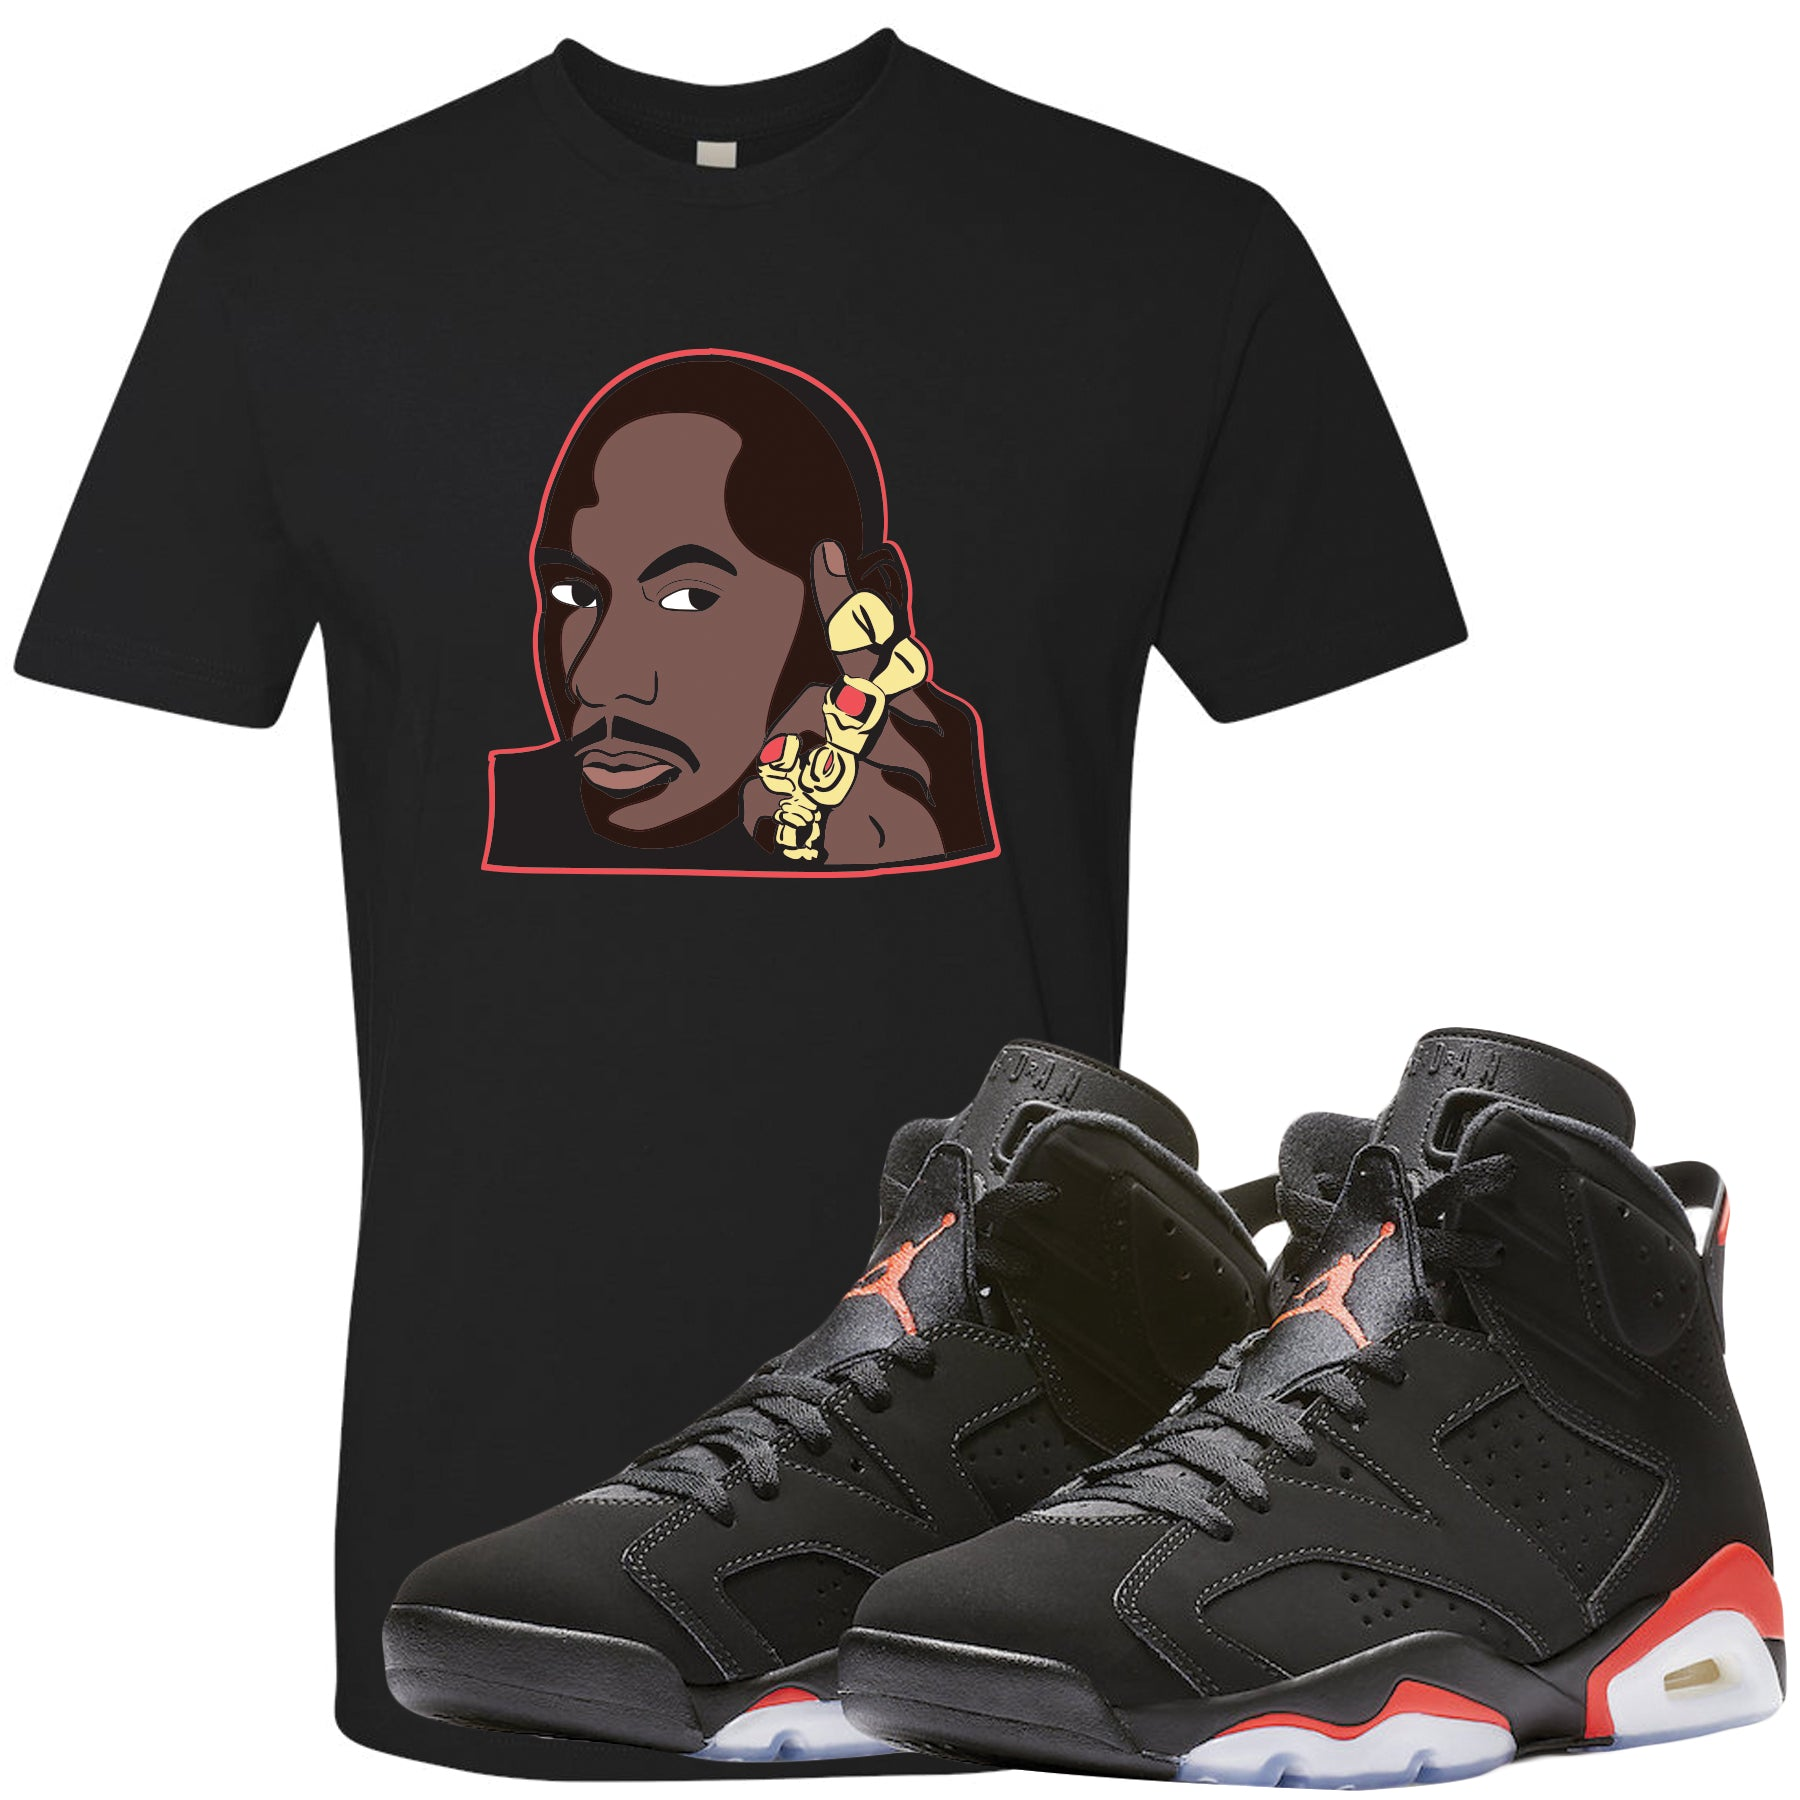 best sneakers 4abd5 66db6 The Jordan 6 Infrared Sneaker Matching Tee is custom designed to perfectly  match the retro Jordan